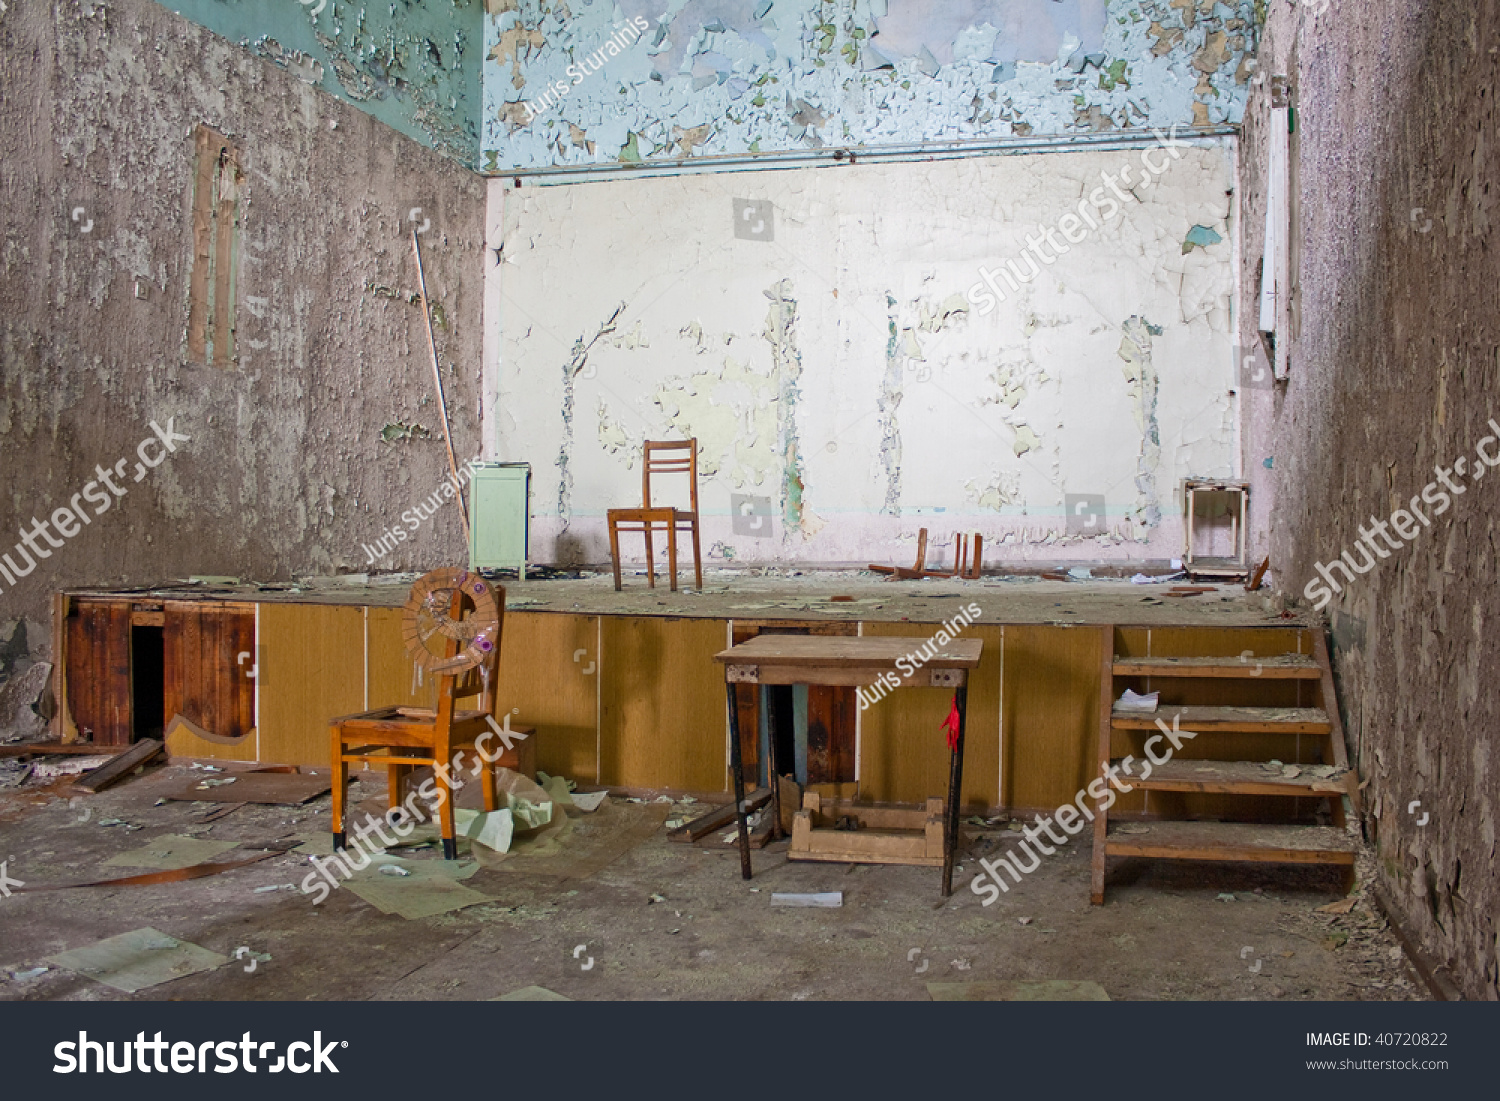 Old Abandoned Messy Room With A Stage Stock Photo